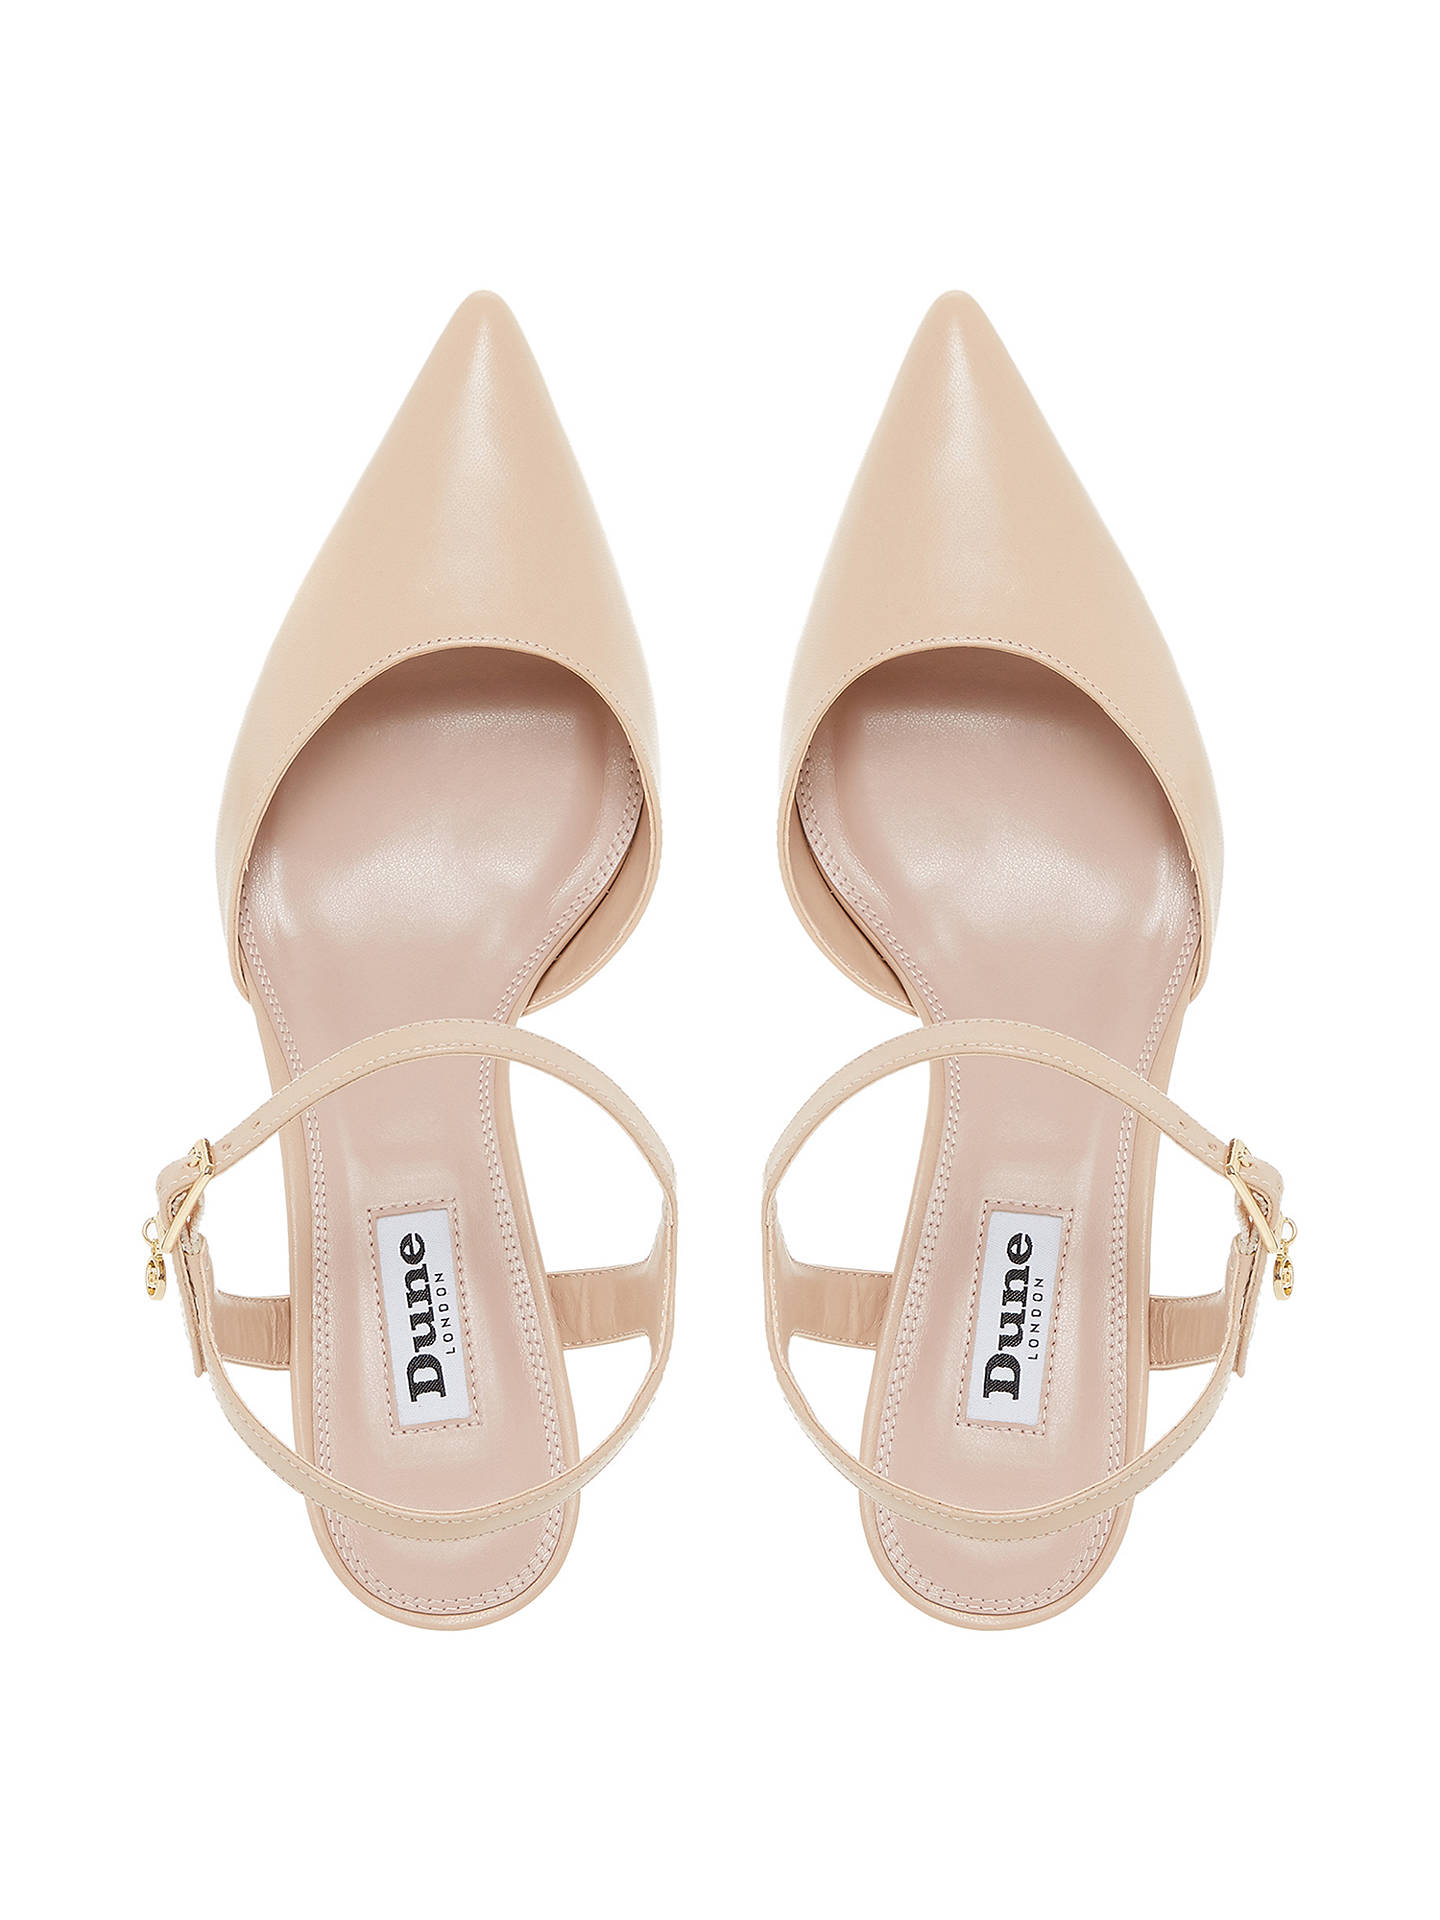 BuyDune Christyne Two Part Sandals, Nude, 3 Online at johnlewis.com